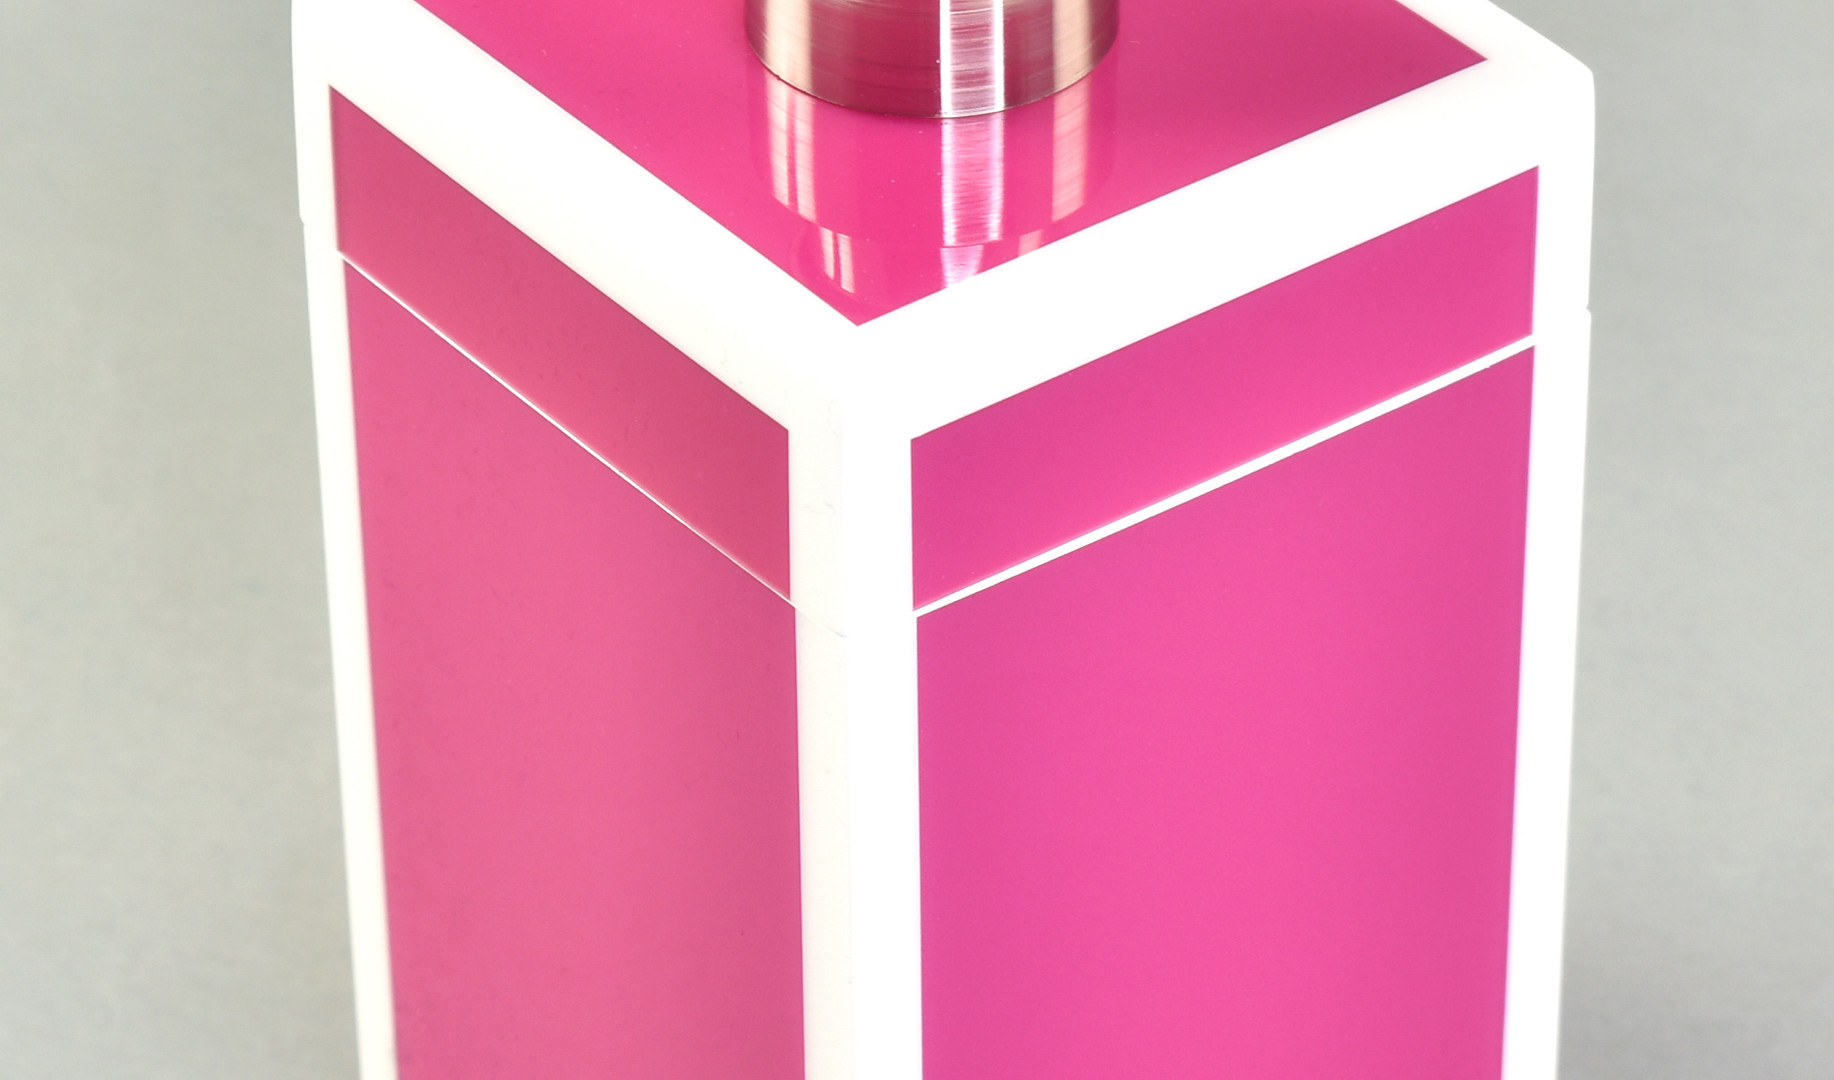 Hot Pink with White- Lotion Pump